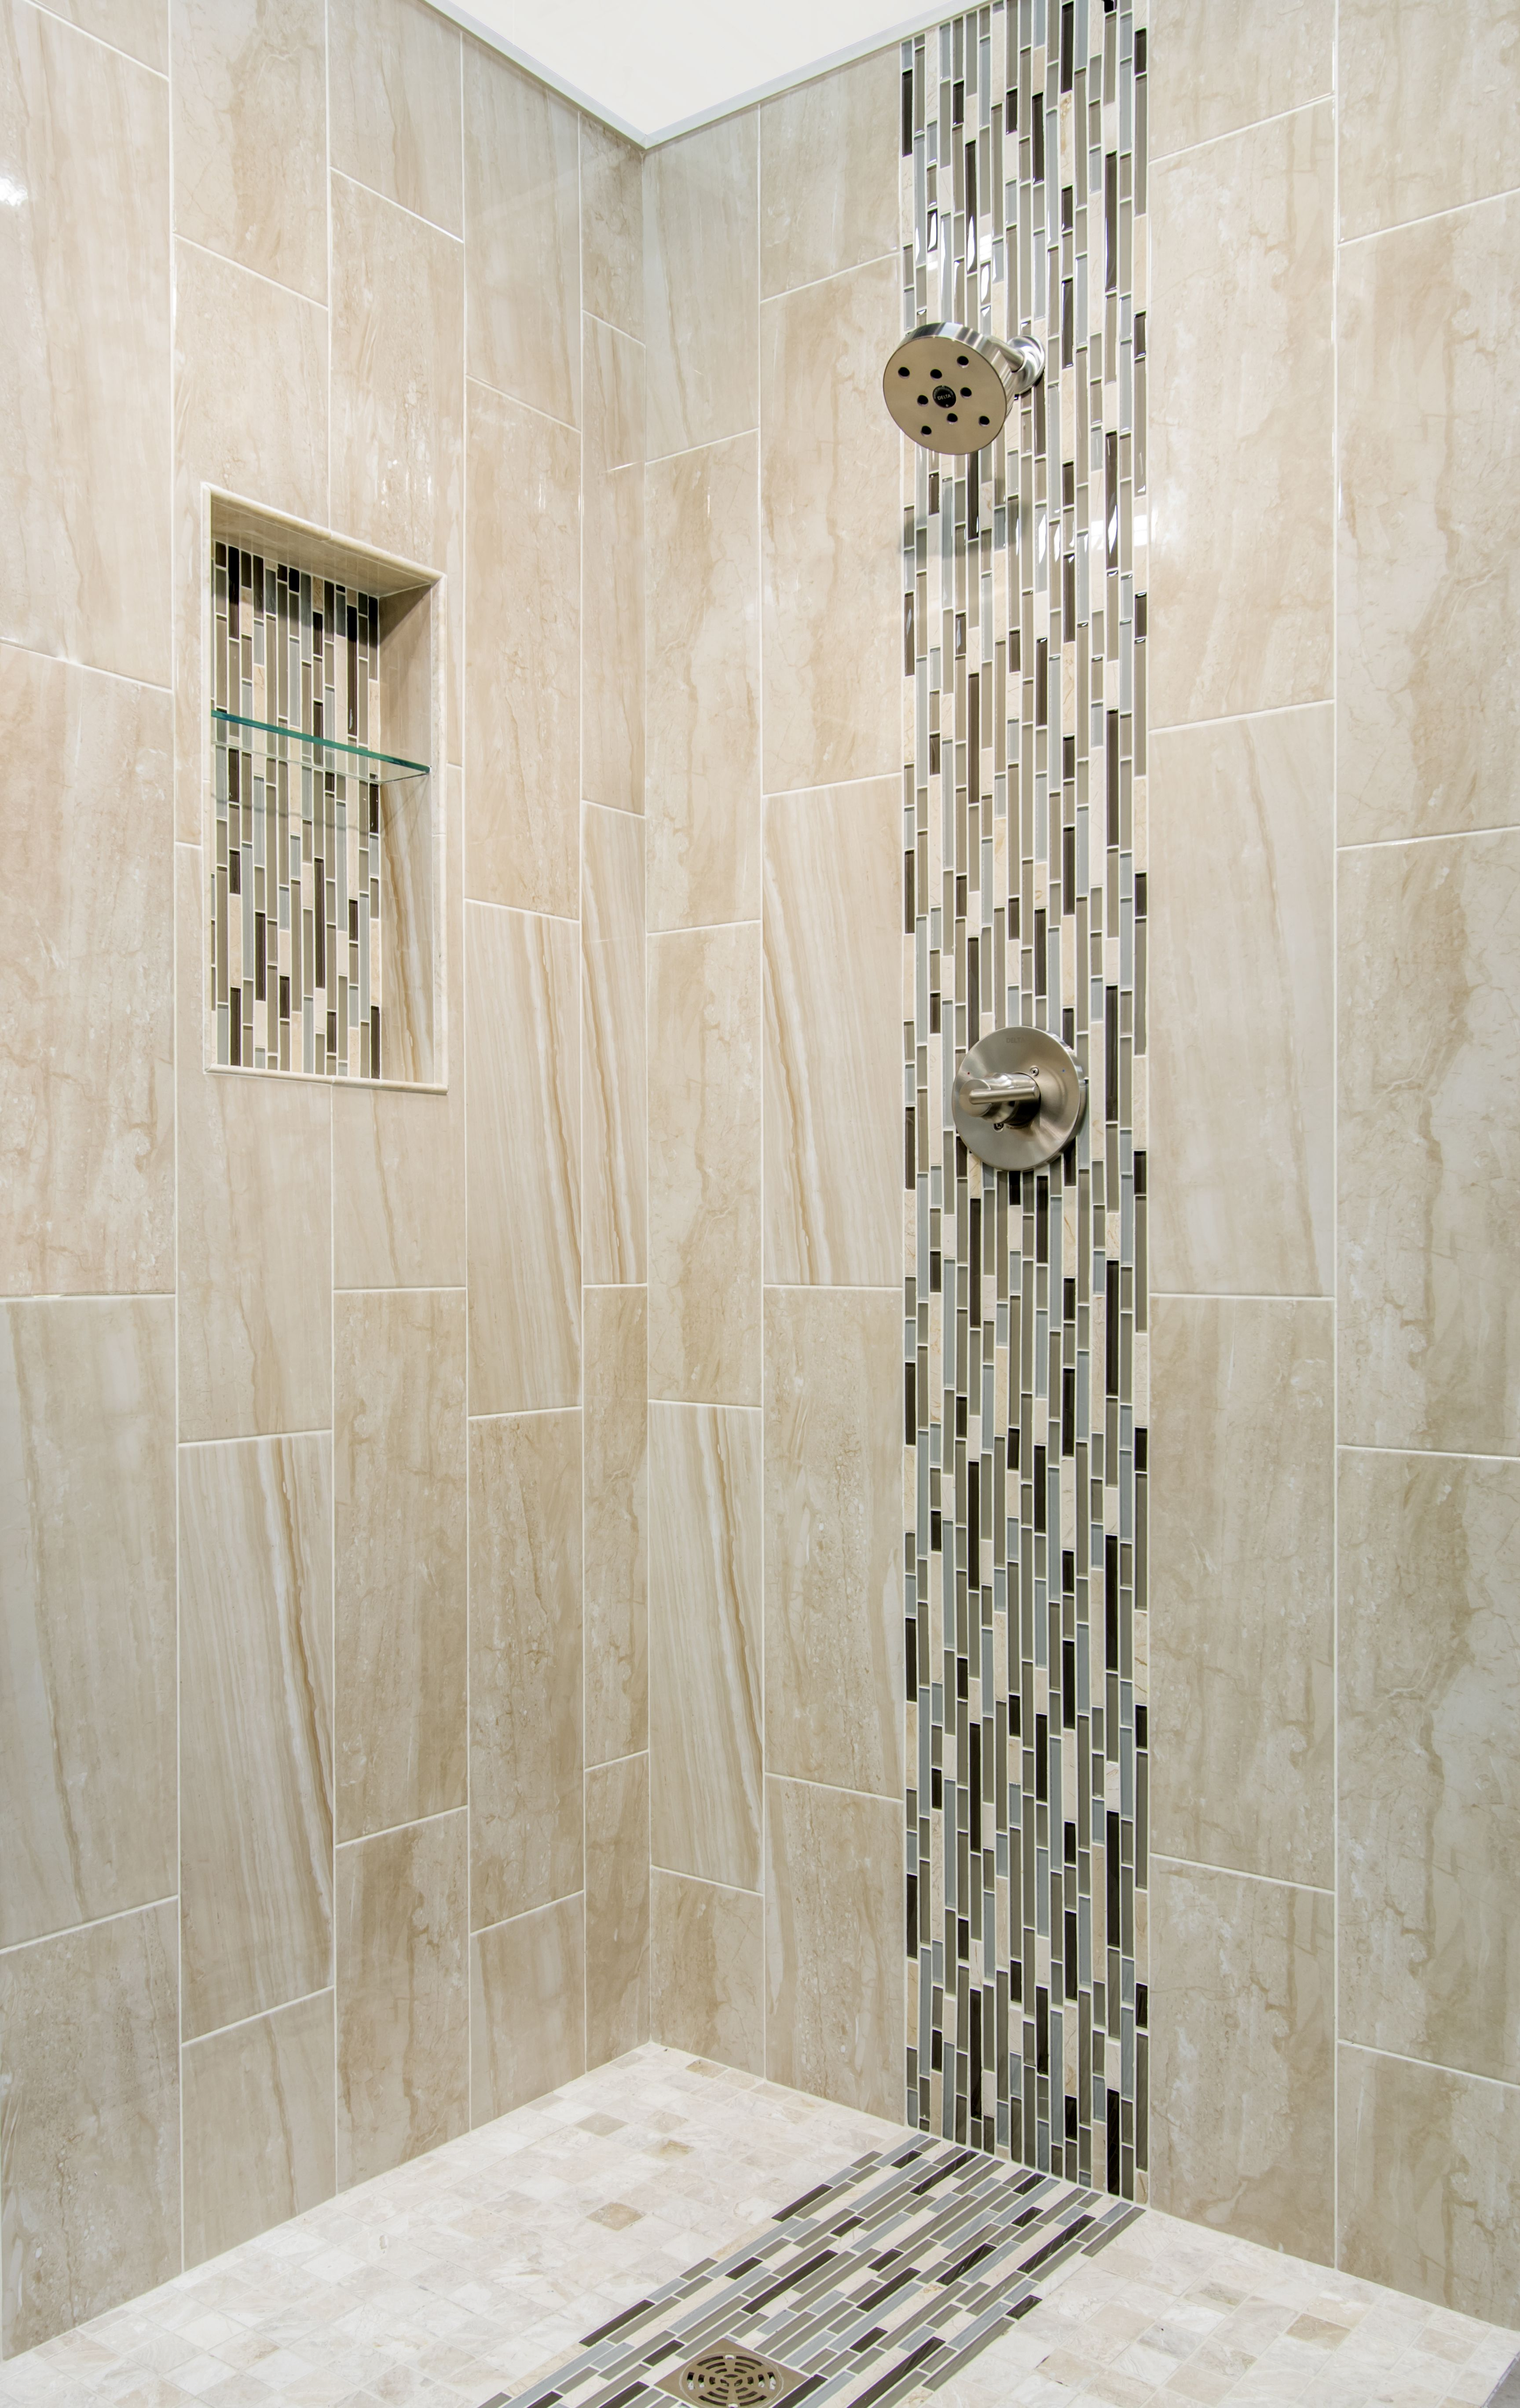 Cappuccino bathroom tiles - Cappuccino Colored Marble Focal Point Bathroom Shower Tile Waldron Stria Glass And Stone Https